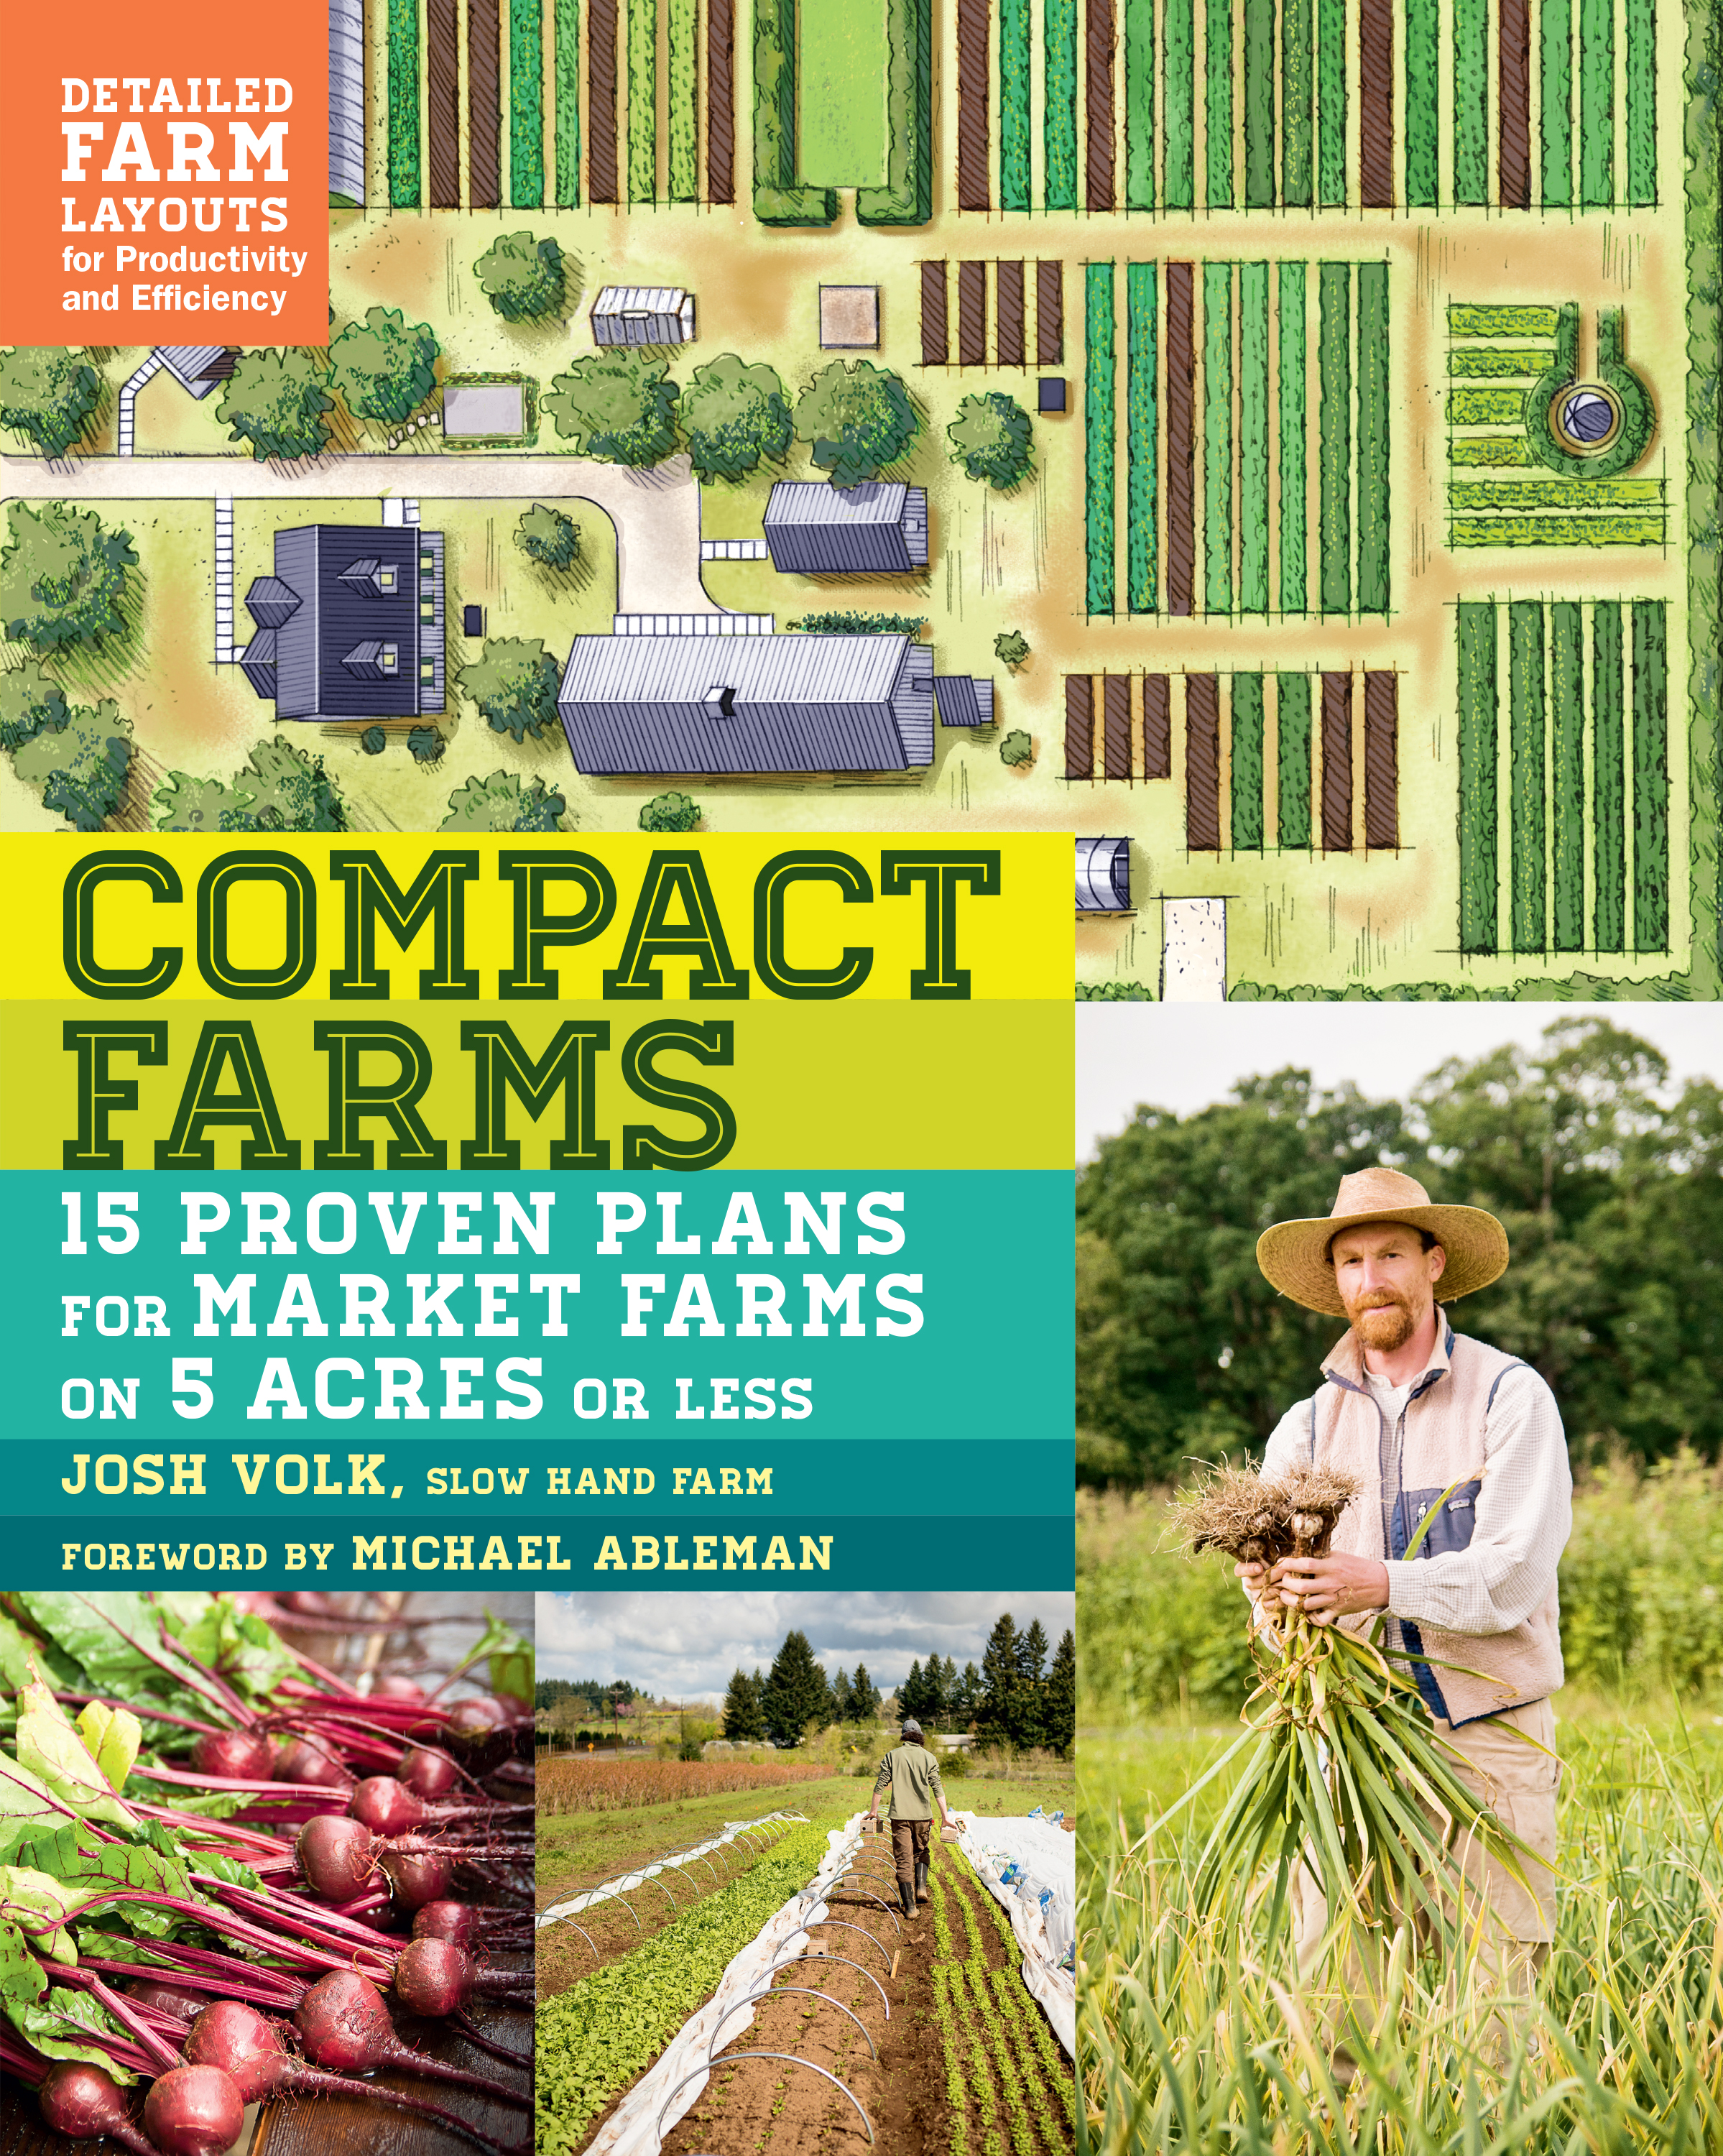 Compact Farms 15 Proven Plans for Market Farms on 5 Acres or Less; Includes Detailed Farm Layouts for Productivity and Efficiency - Josh Volk